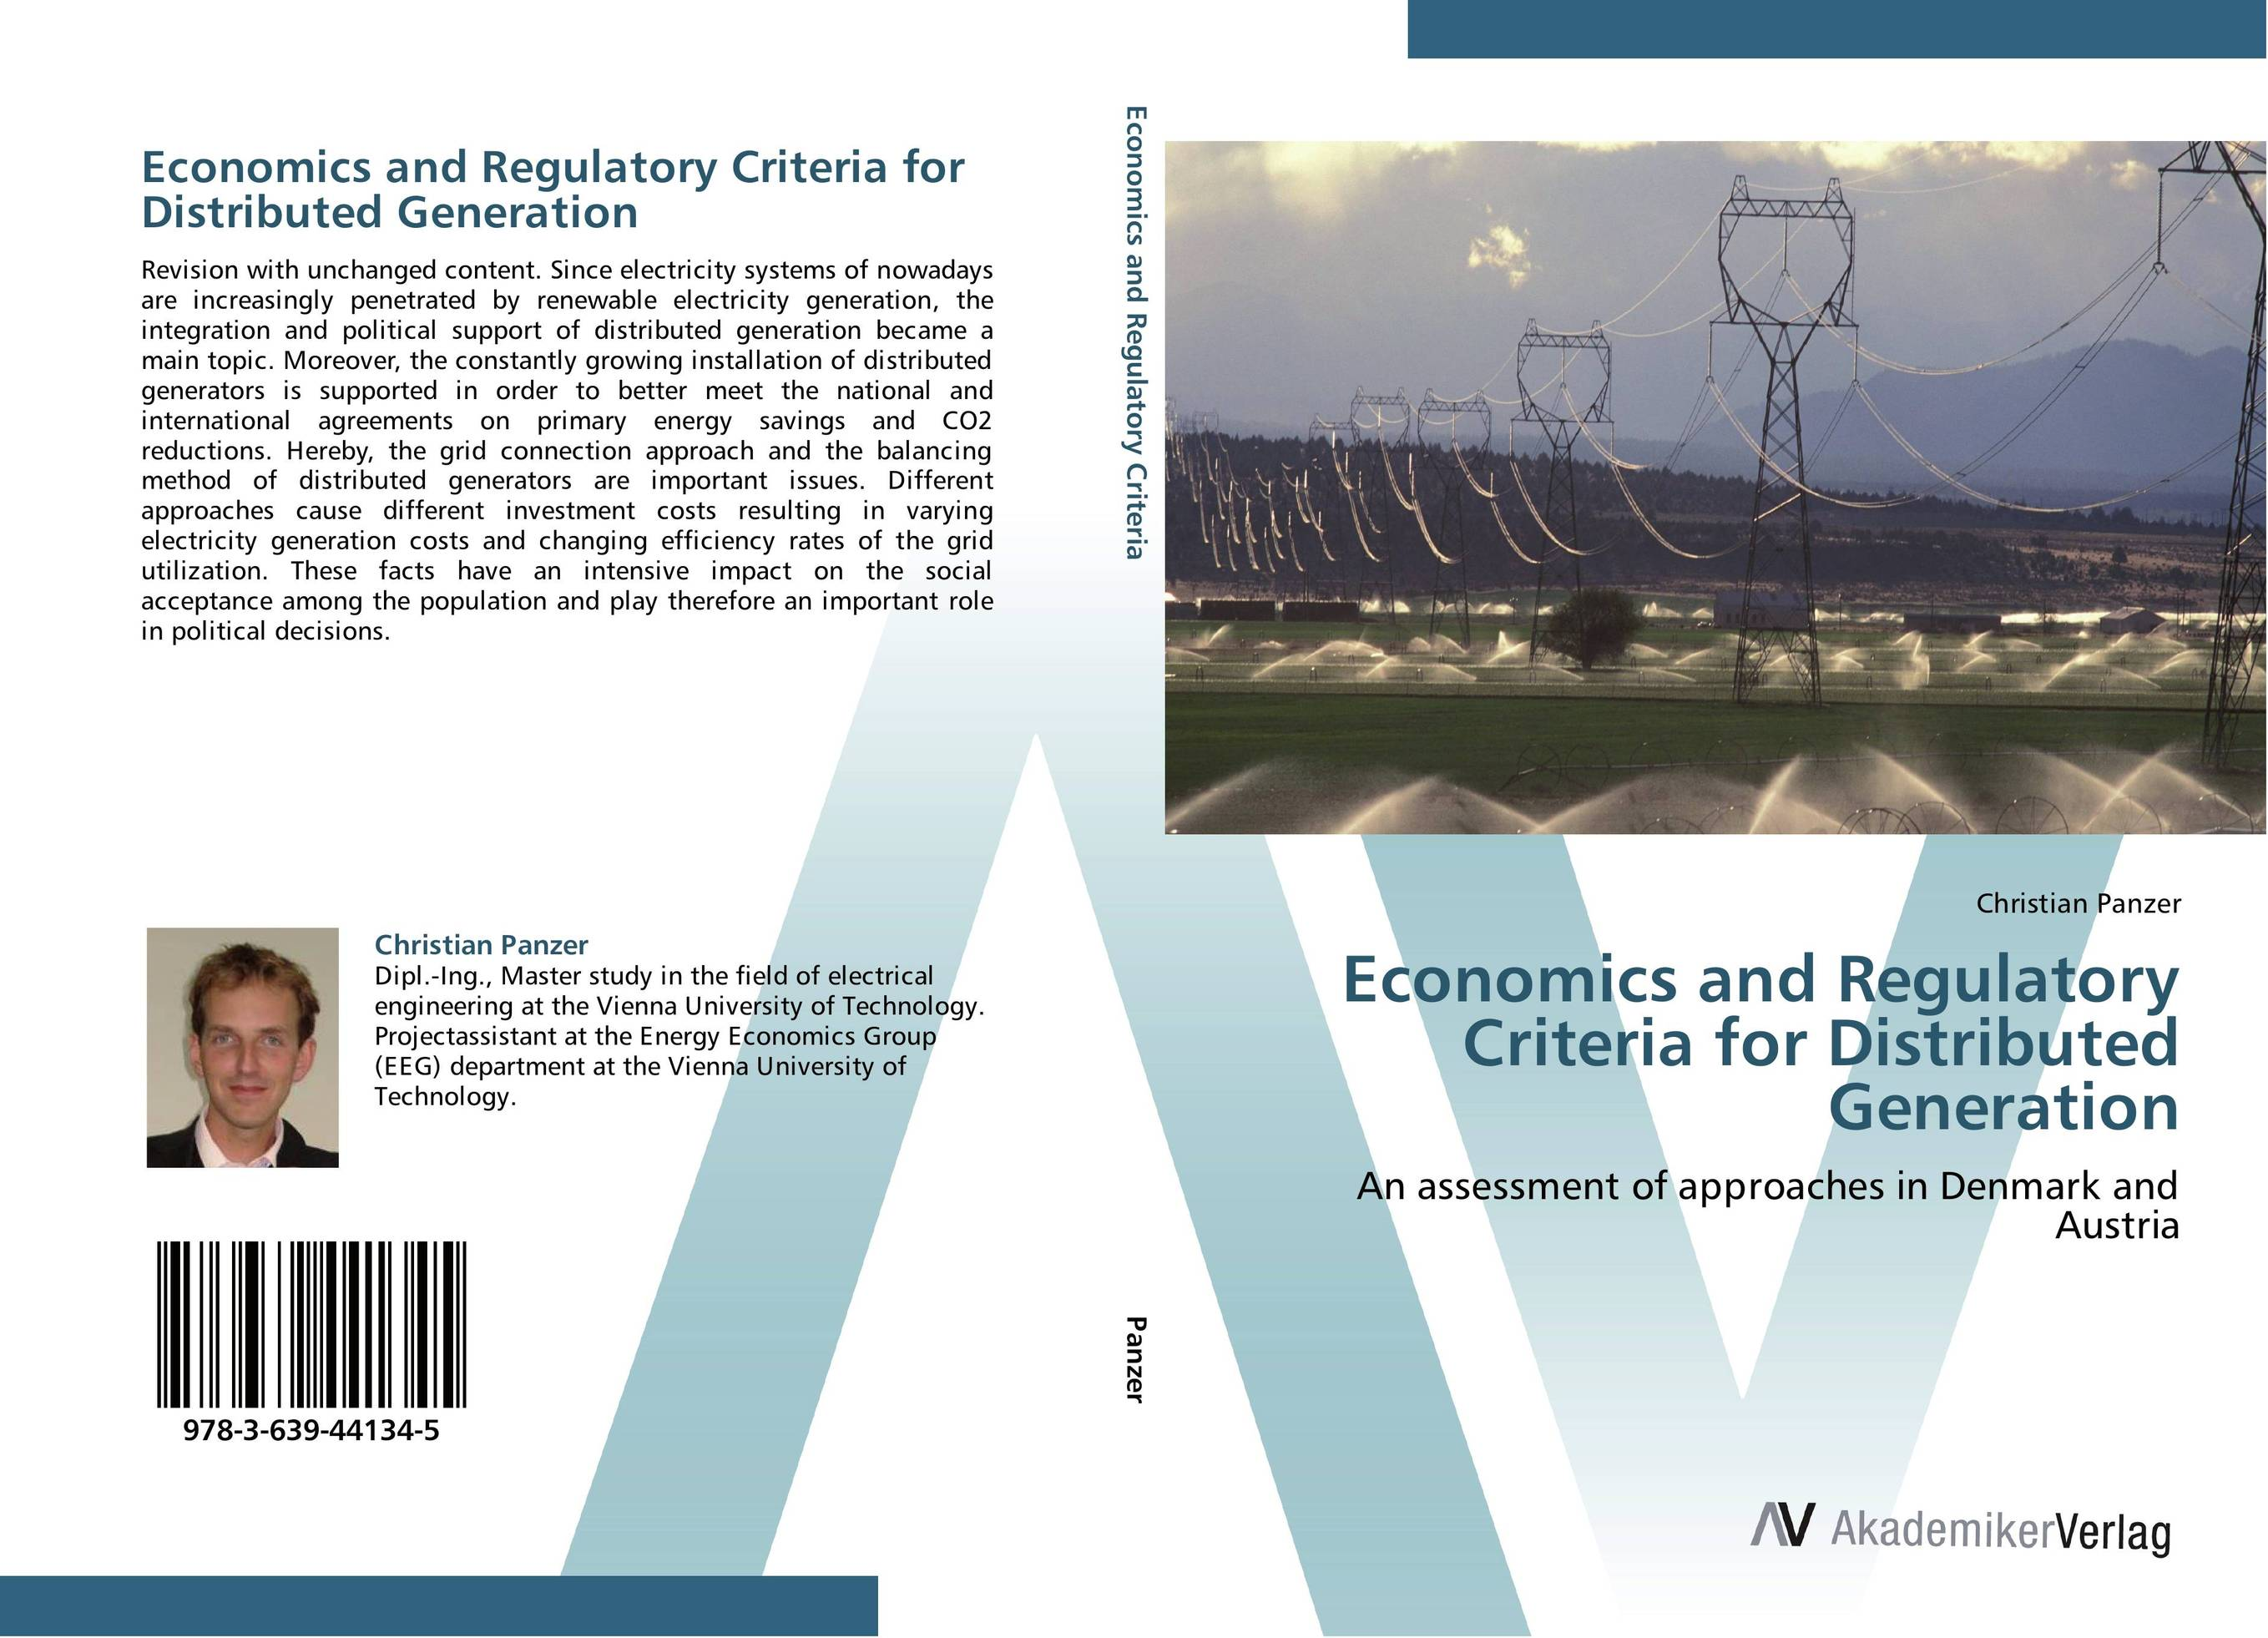 Economics and Regulatory Criteria for Distributed Generation investment costs of renewable electricity technologies